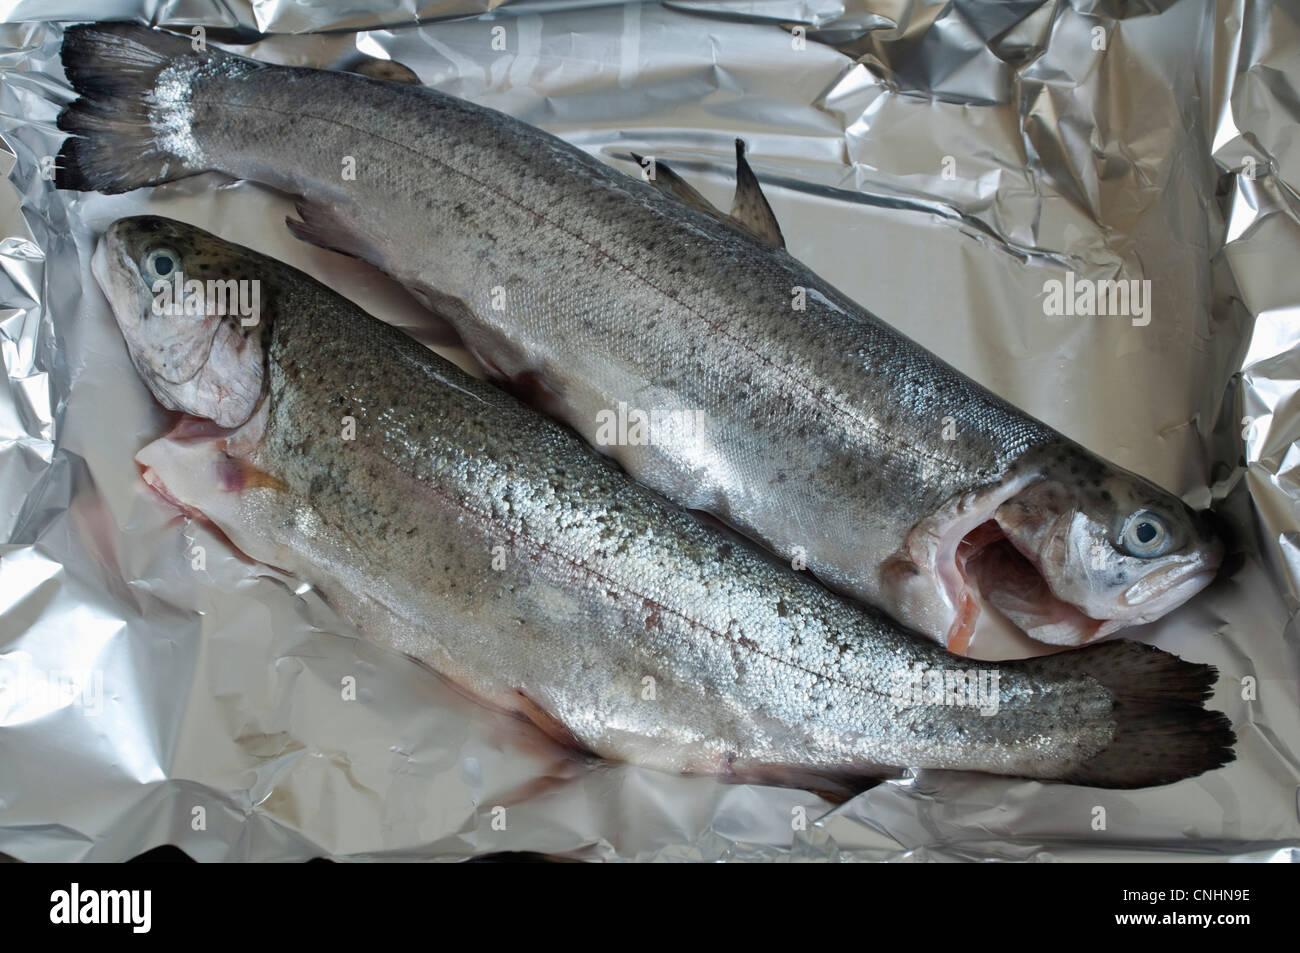 Rainbow Trout - two raw fresh wet fish - placed in a dish covered in foil, in  preparation for cooking / baking. - Stock Image